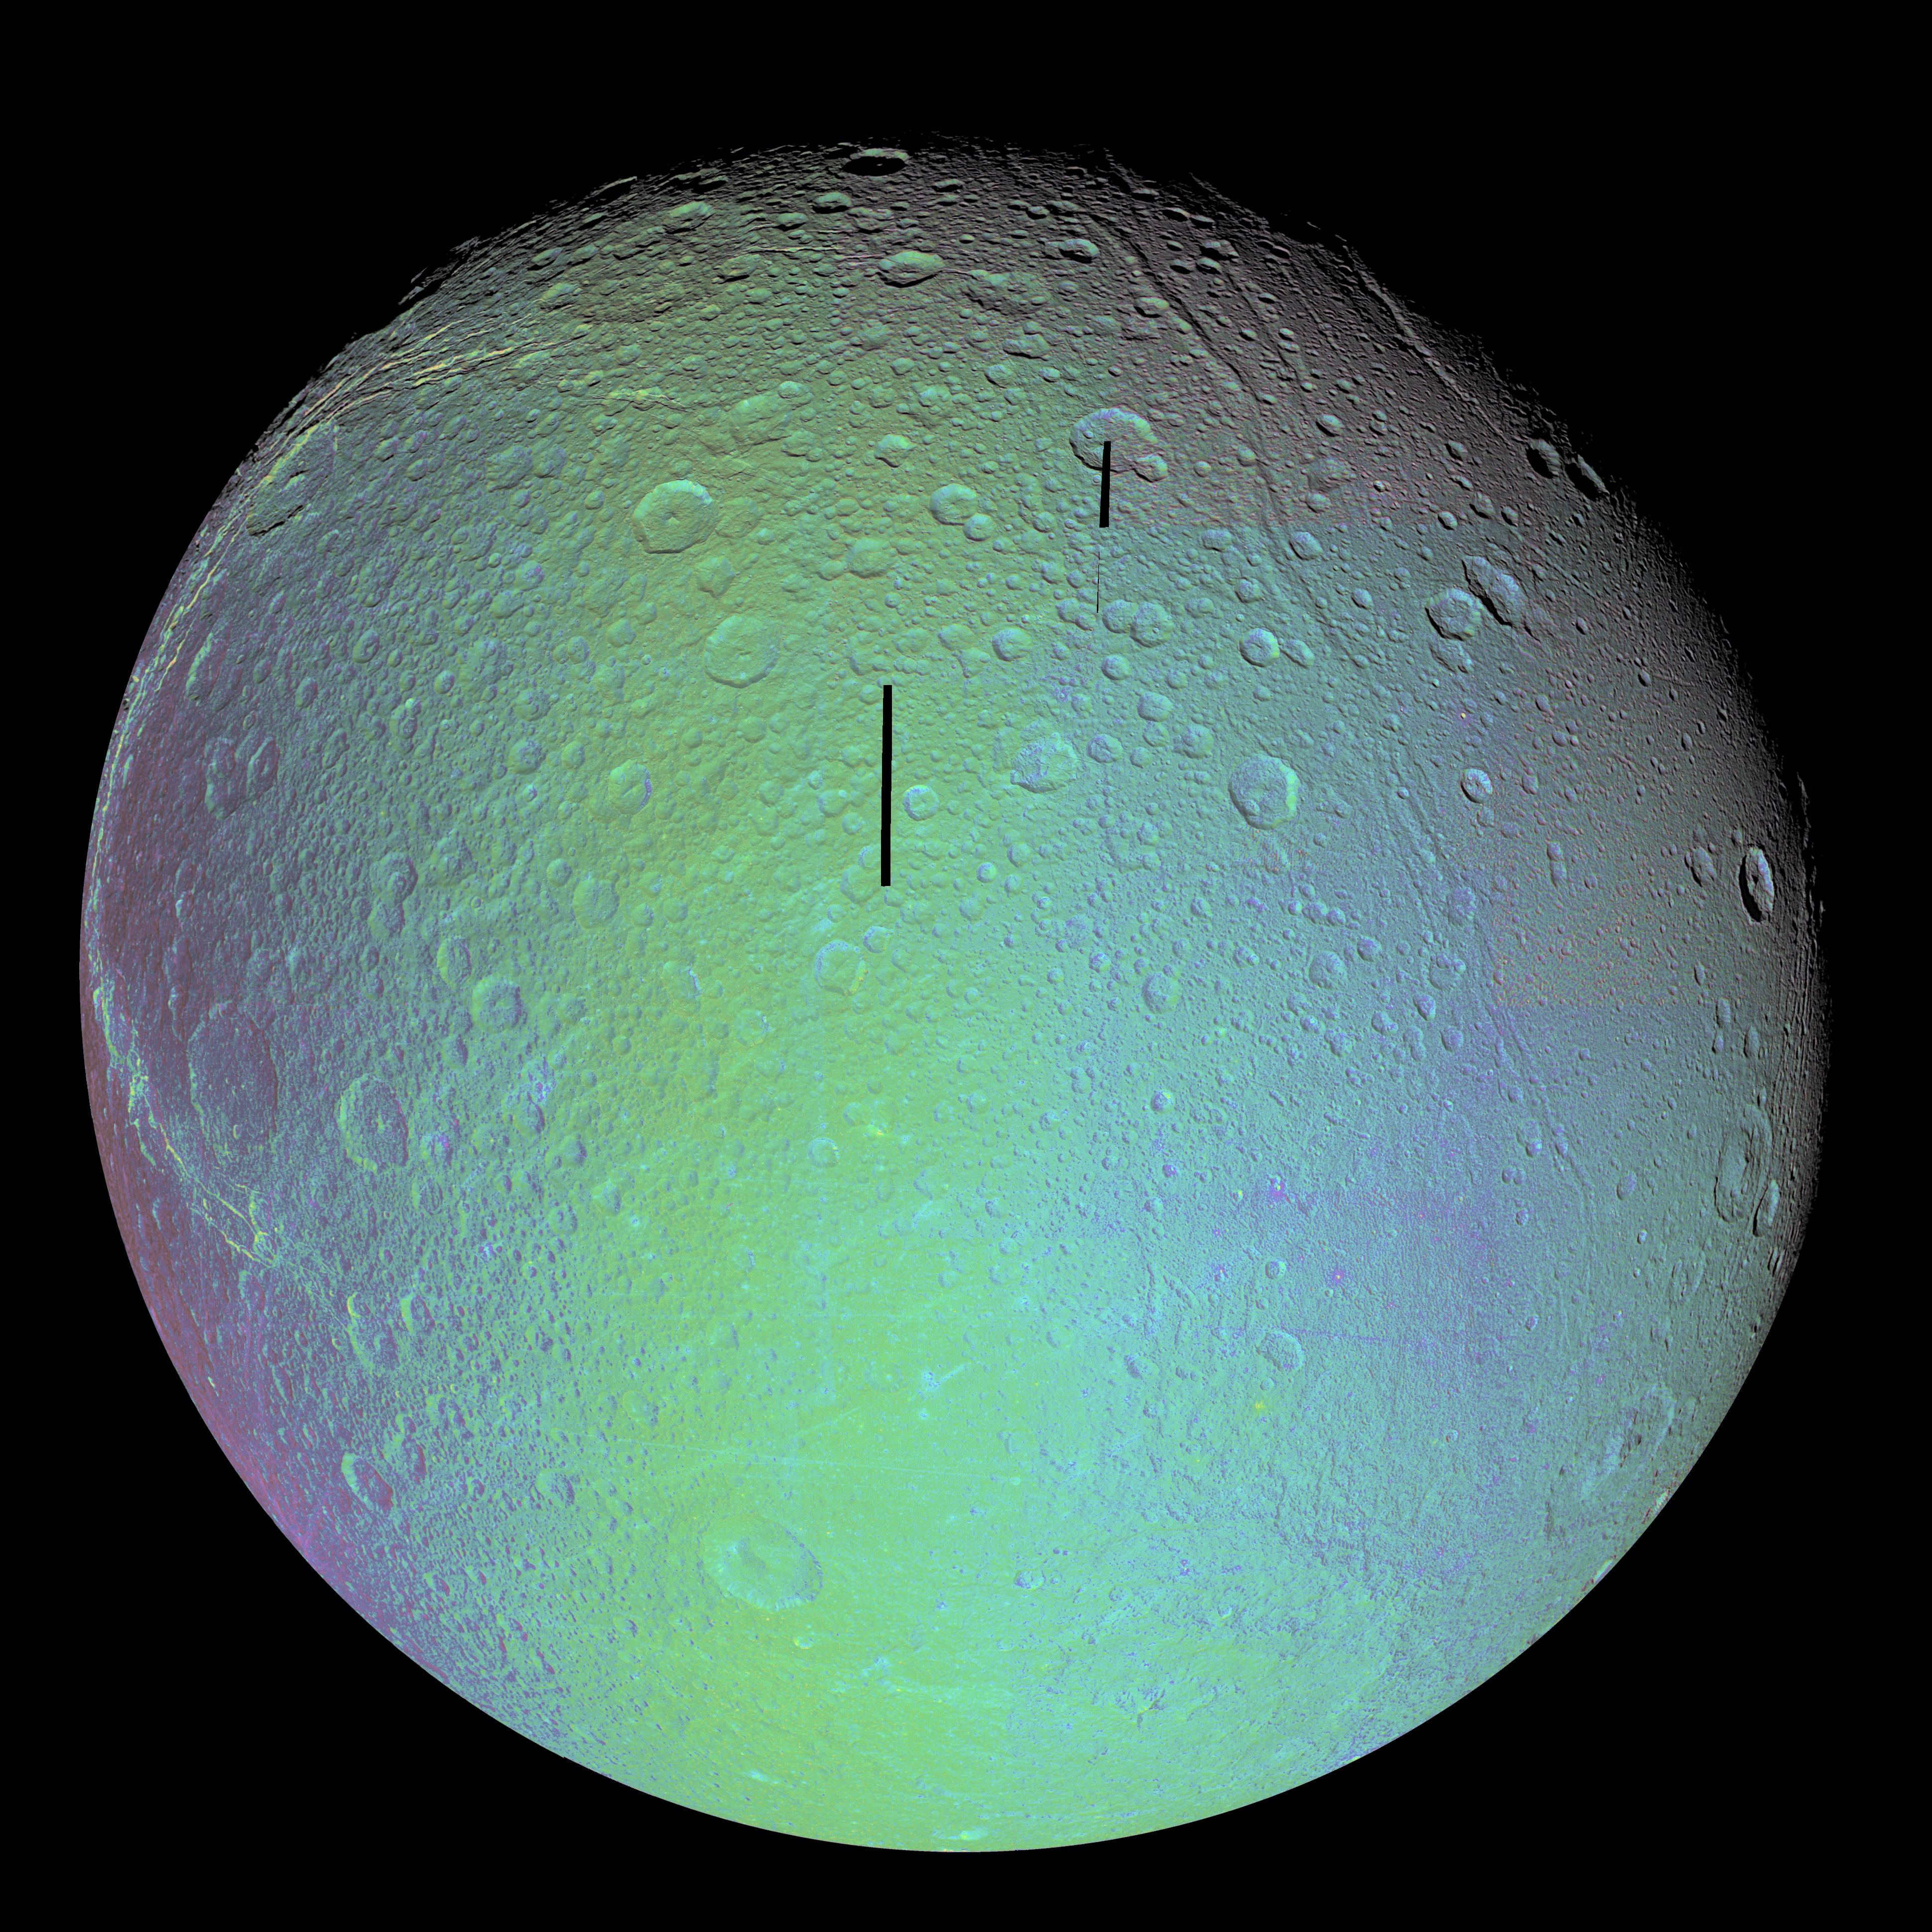 a false-color image of Dione